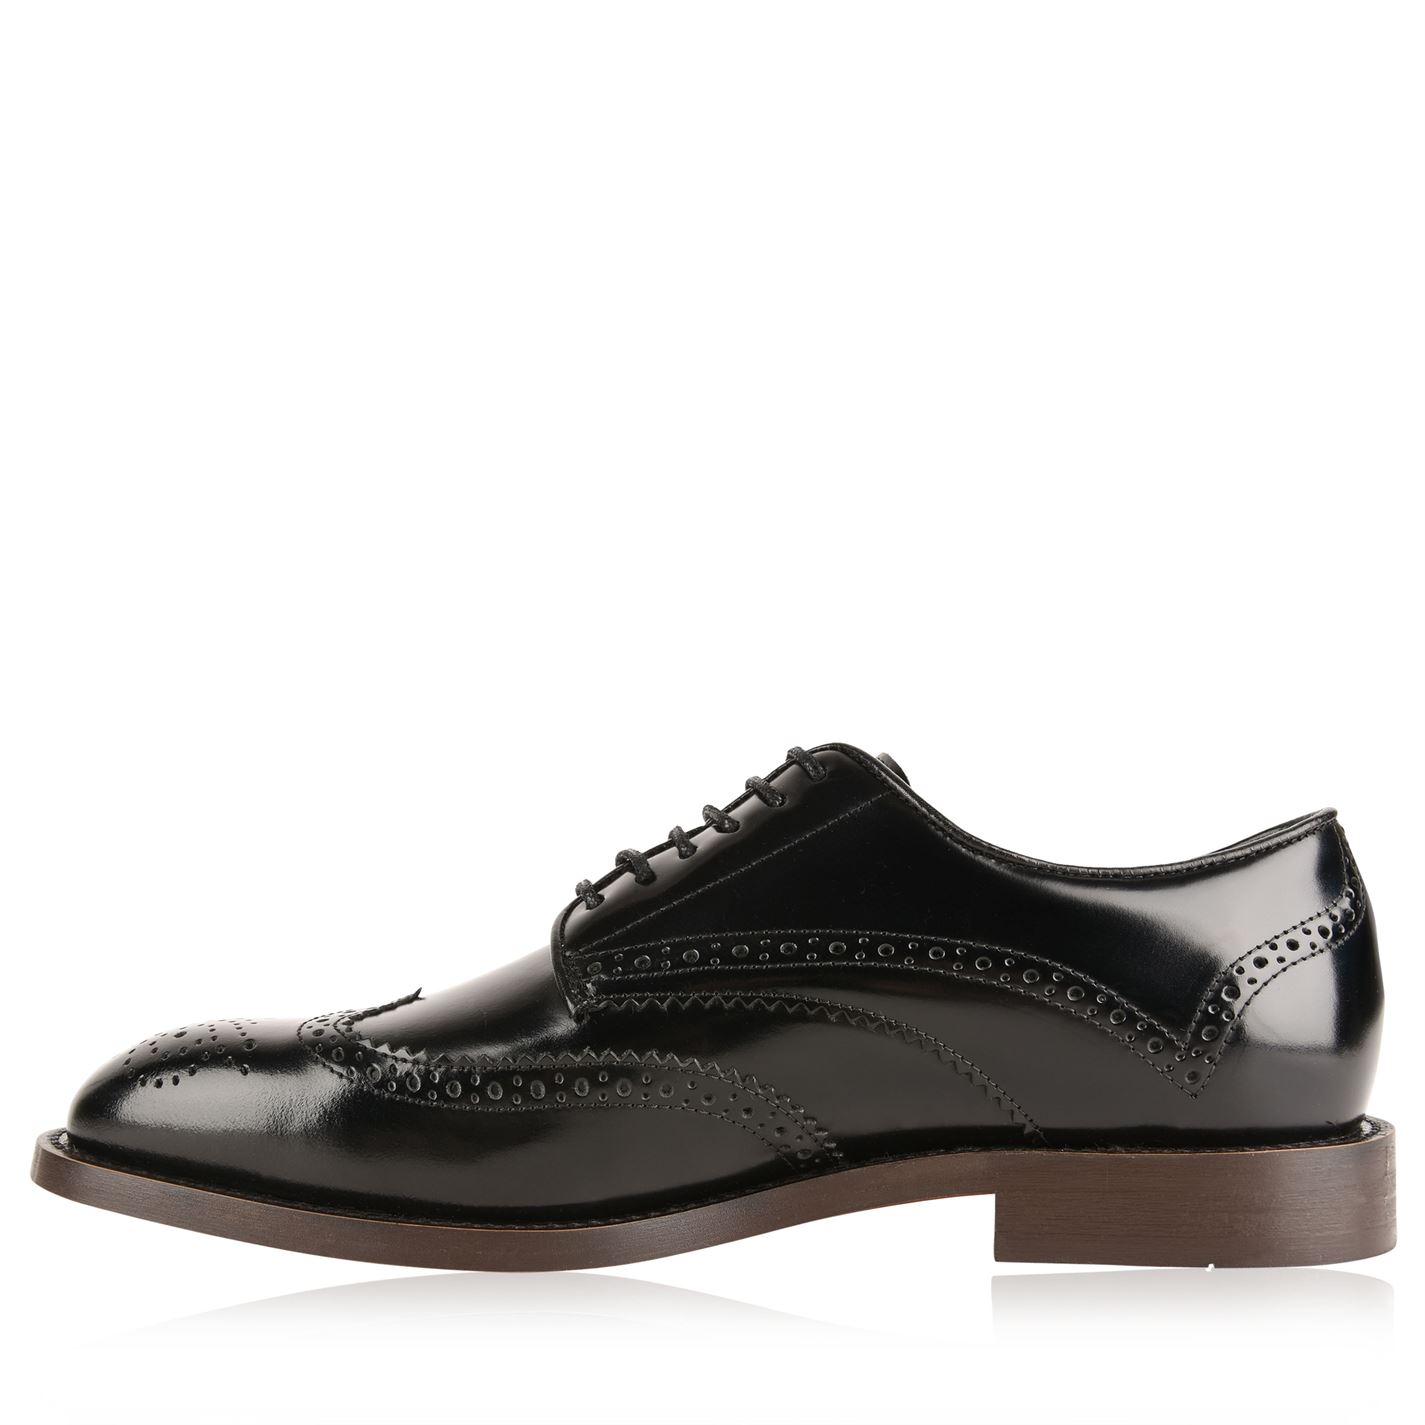 H By Hudson Mens Breds Brogues Lace Up Up Up Block Heel Rounded Toe c39a53